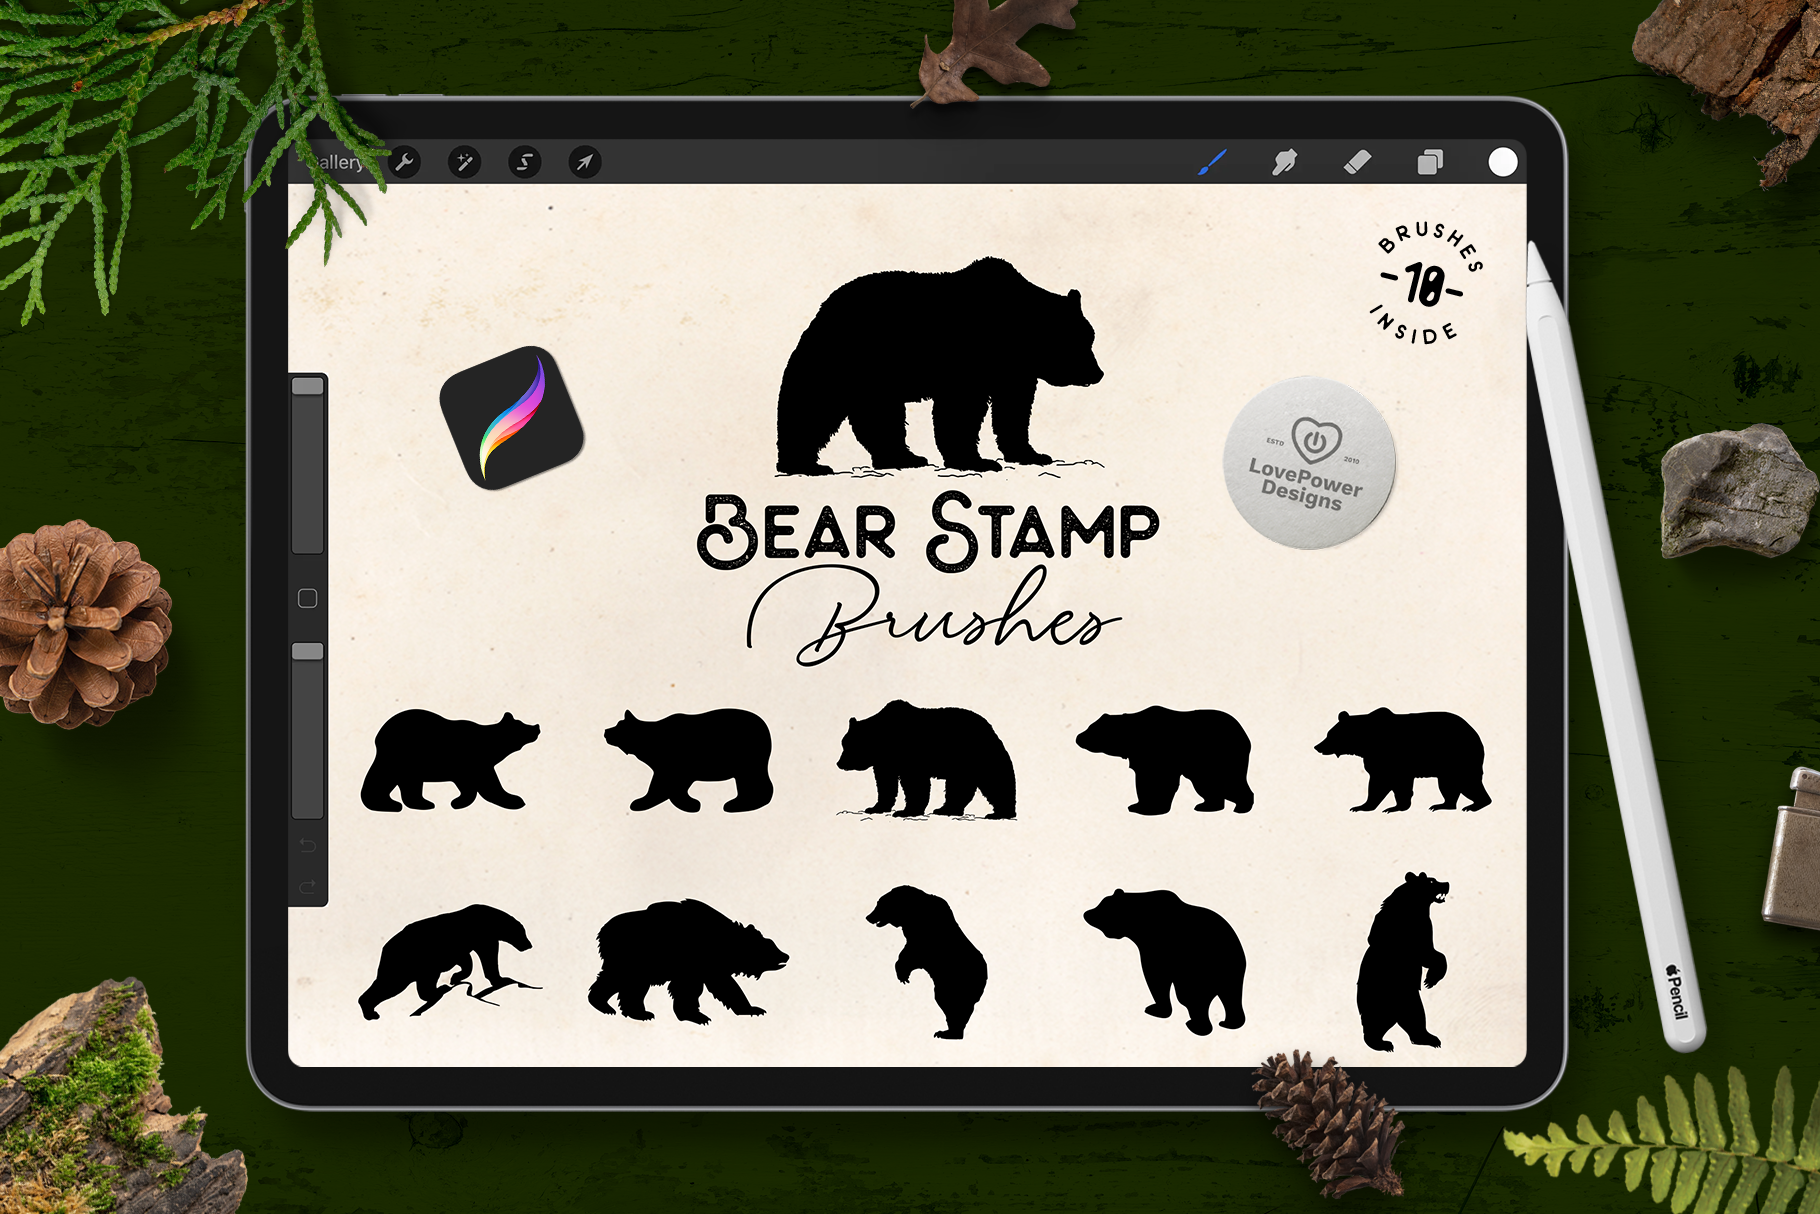 Procreate Brushes | Bear Stamp Brushes for Procreate